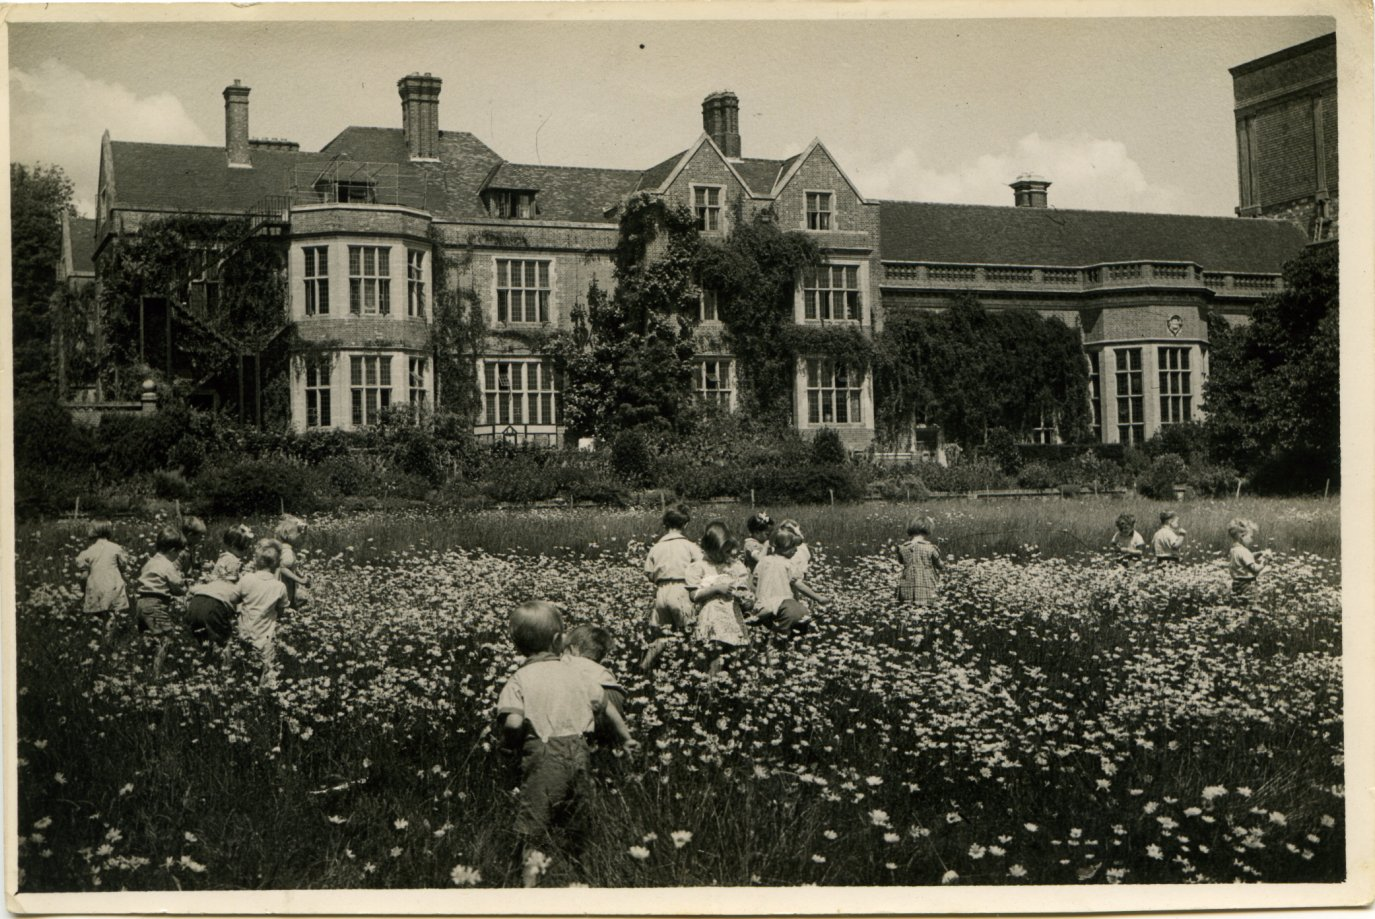 Wartime evacuee children at Glyndebourne